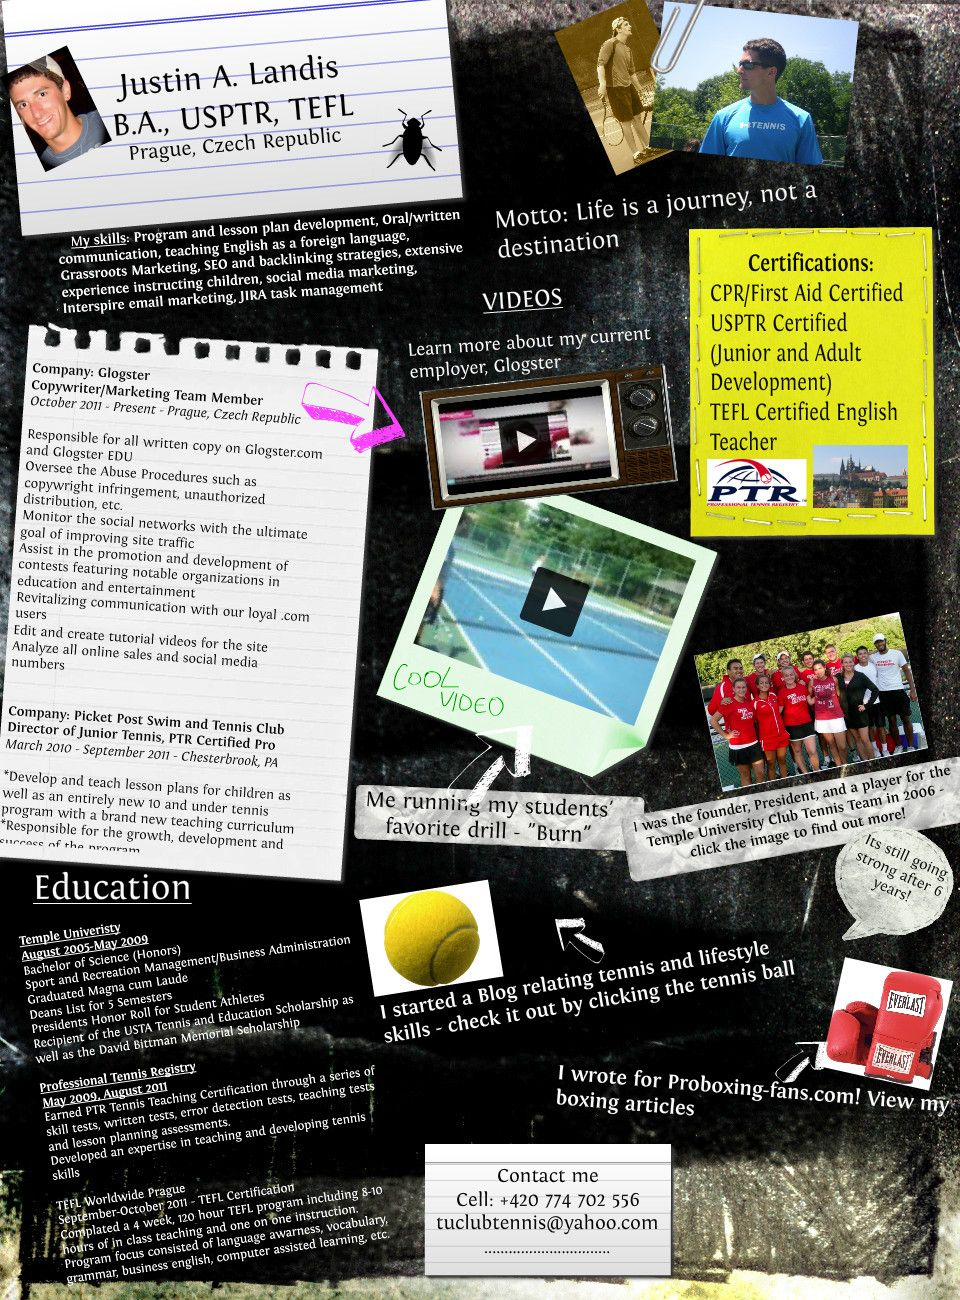 Interactive resume I created on Glogster | Glogster | Pinterest